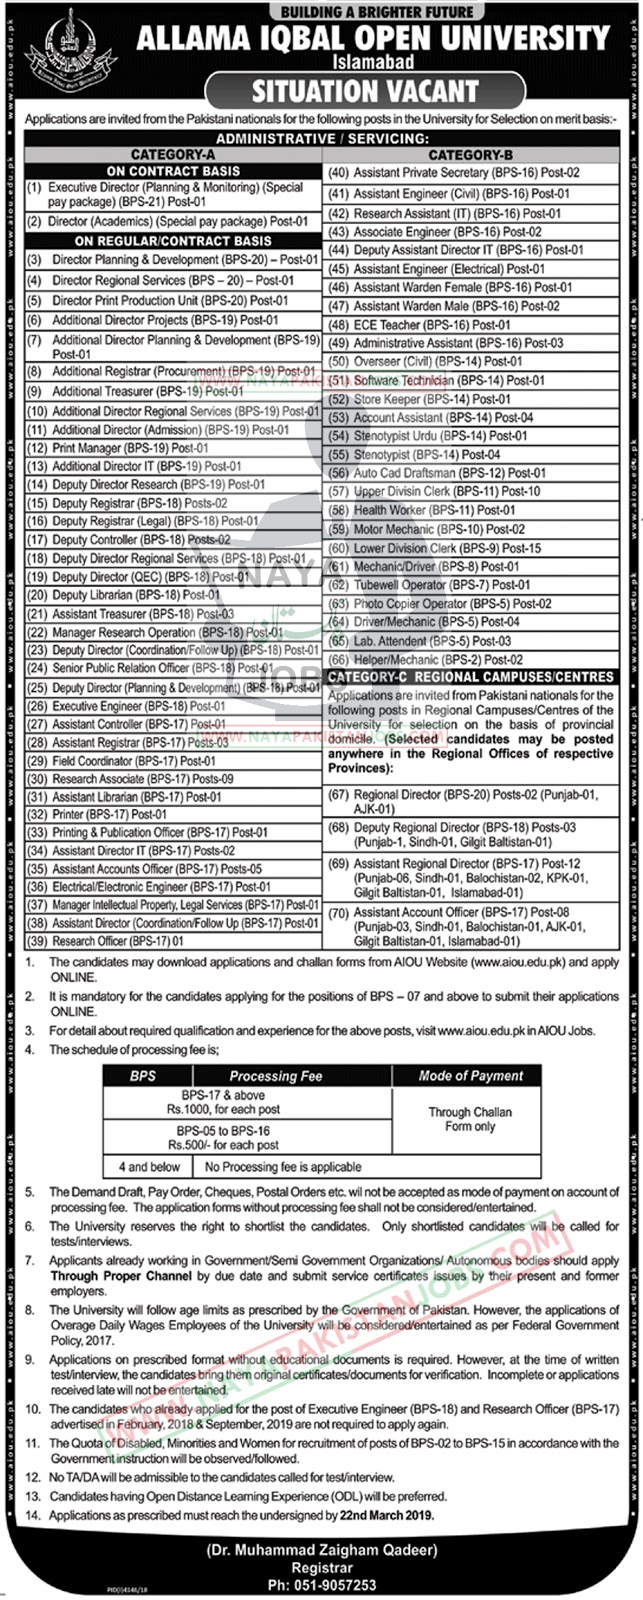 aiou application form 2019, aiou jobs 2019 application form,Allama Iqbal Open University AIOU Jobs 2019 March